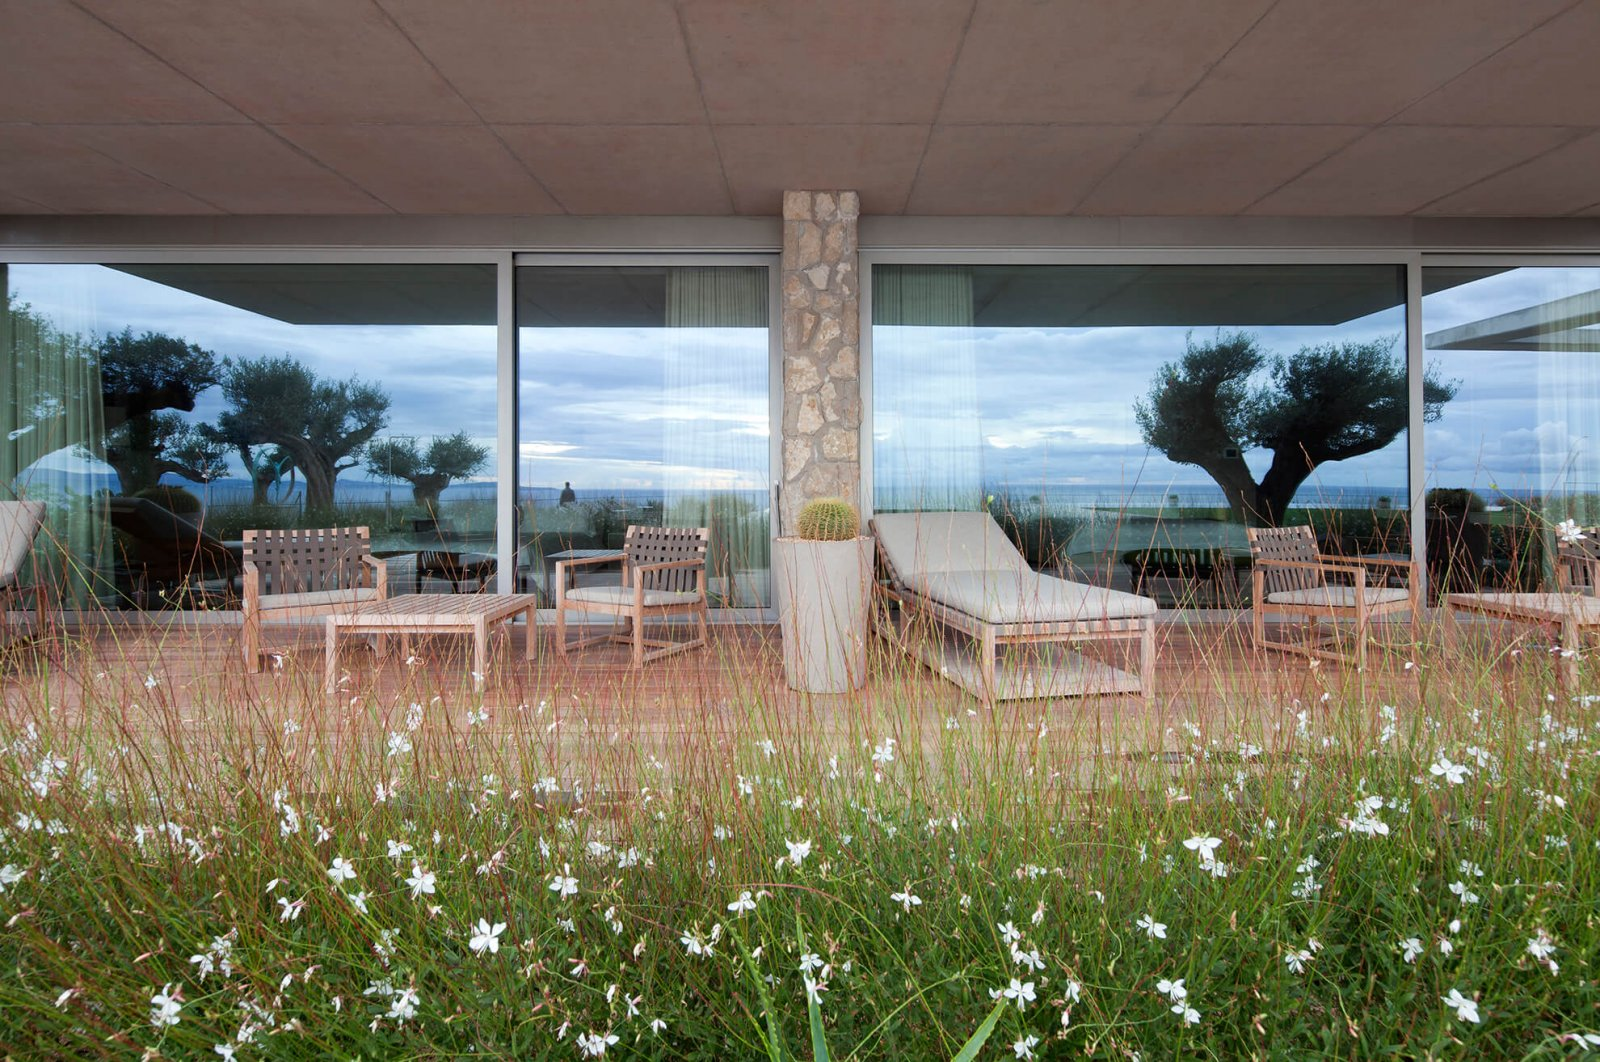 Detail view of one of the covered chill-out areas, in front of large glass doors and a garden area